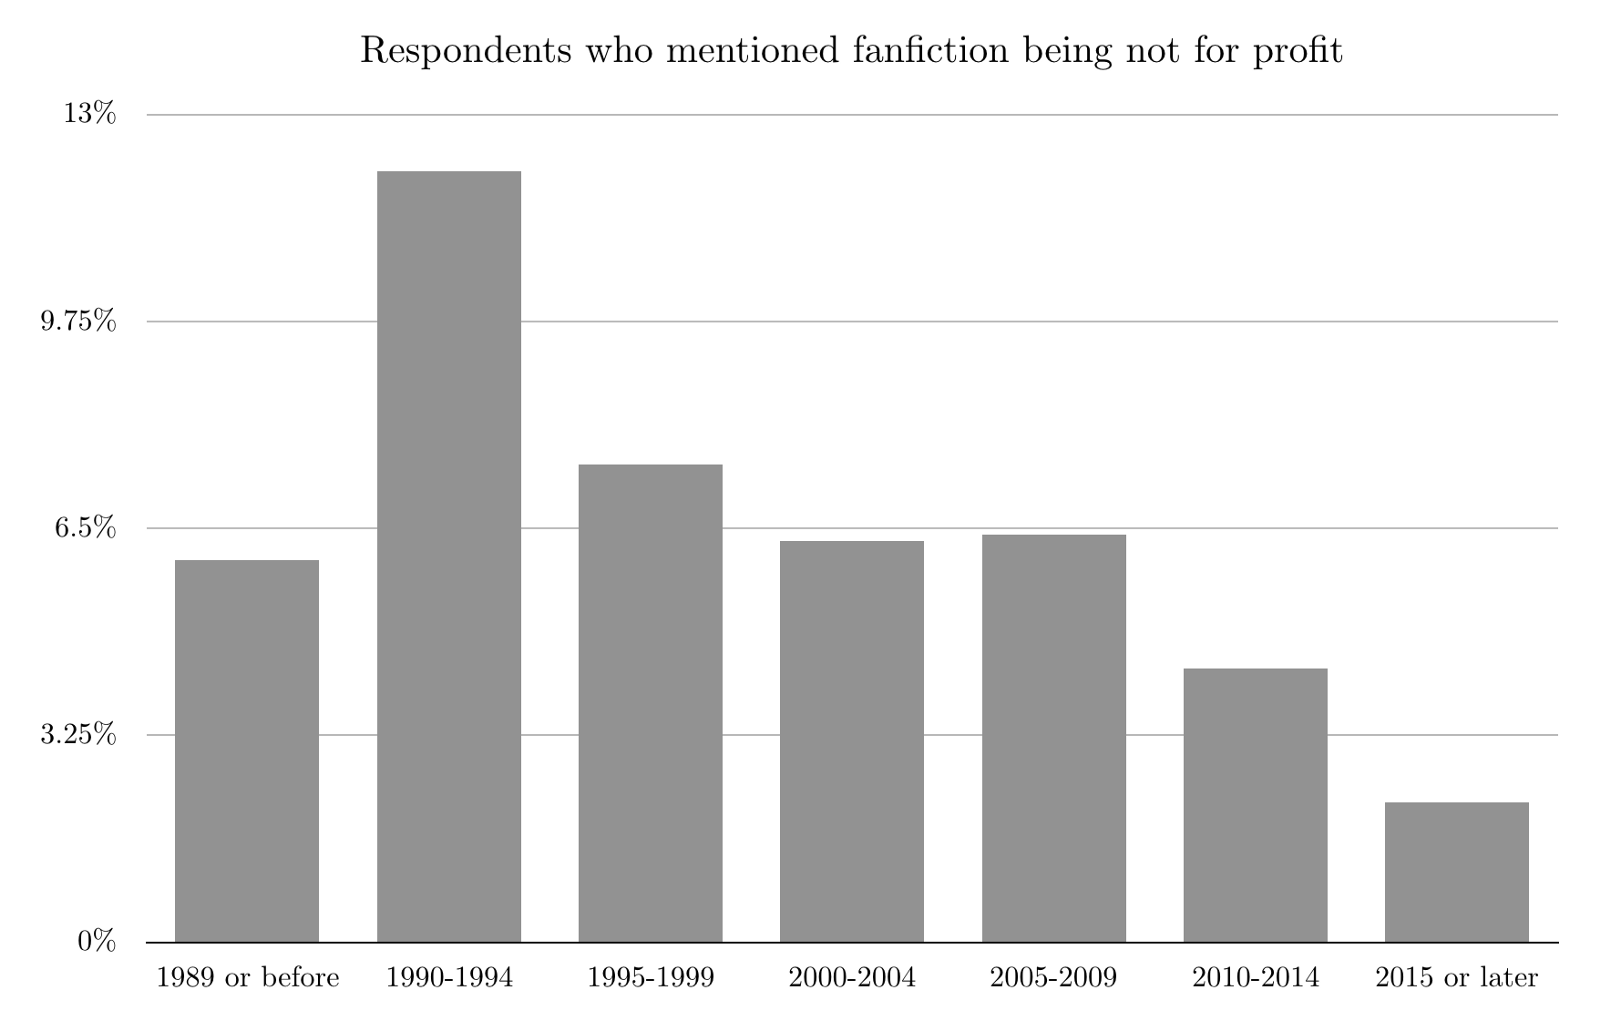 A bar graph showing that fans who entered fandom between 1990 and 1994 were much more likely to say that fanfiction should be not for profit.